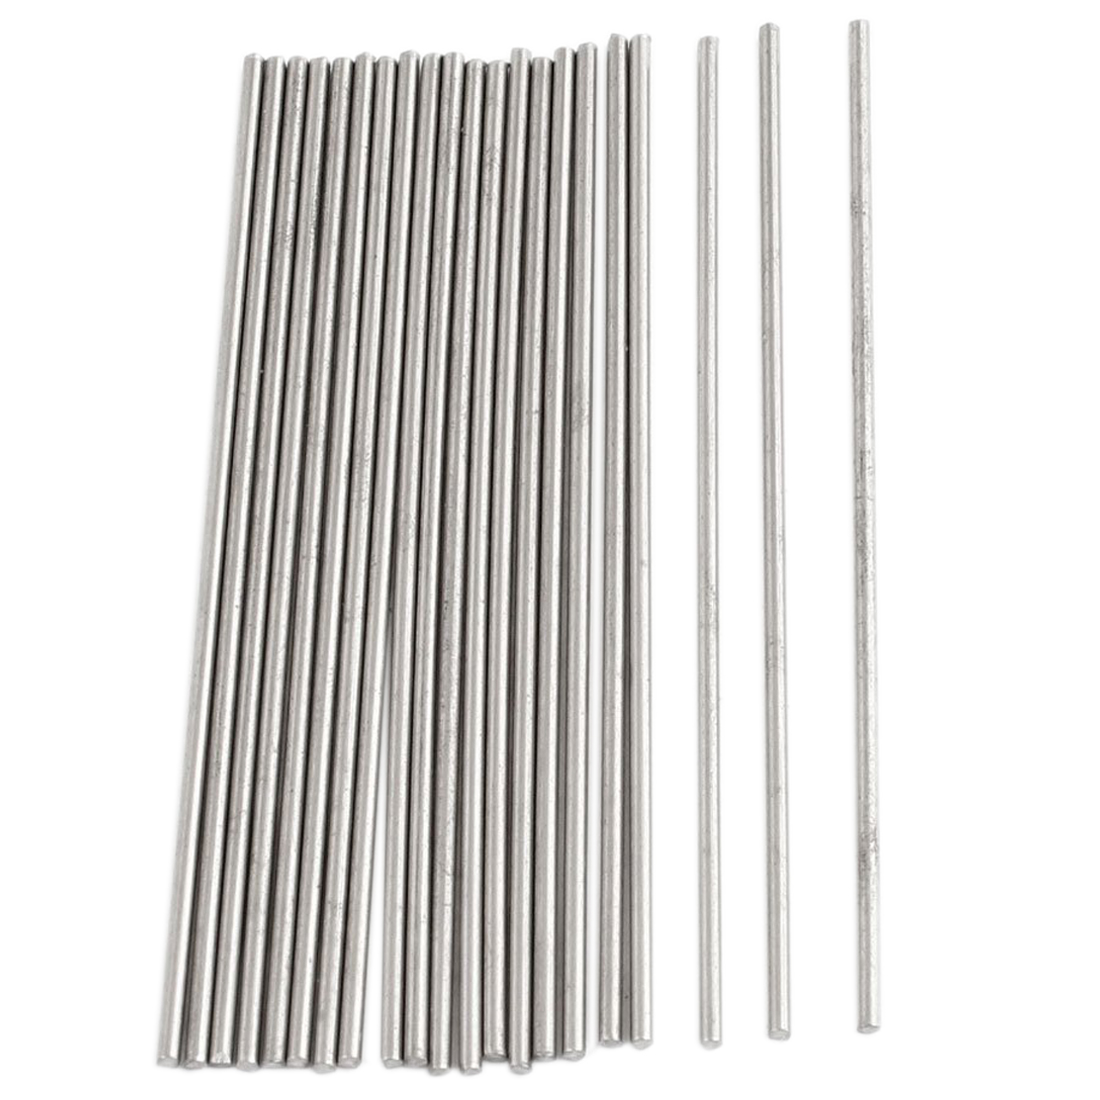 20pcs 50mm x 1mm Silver Tone Stainless Steel Transmission Round Rod20pcs 50mm x 1mm Silver Tone Stainless Steel Transmission Round Rod